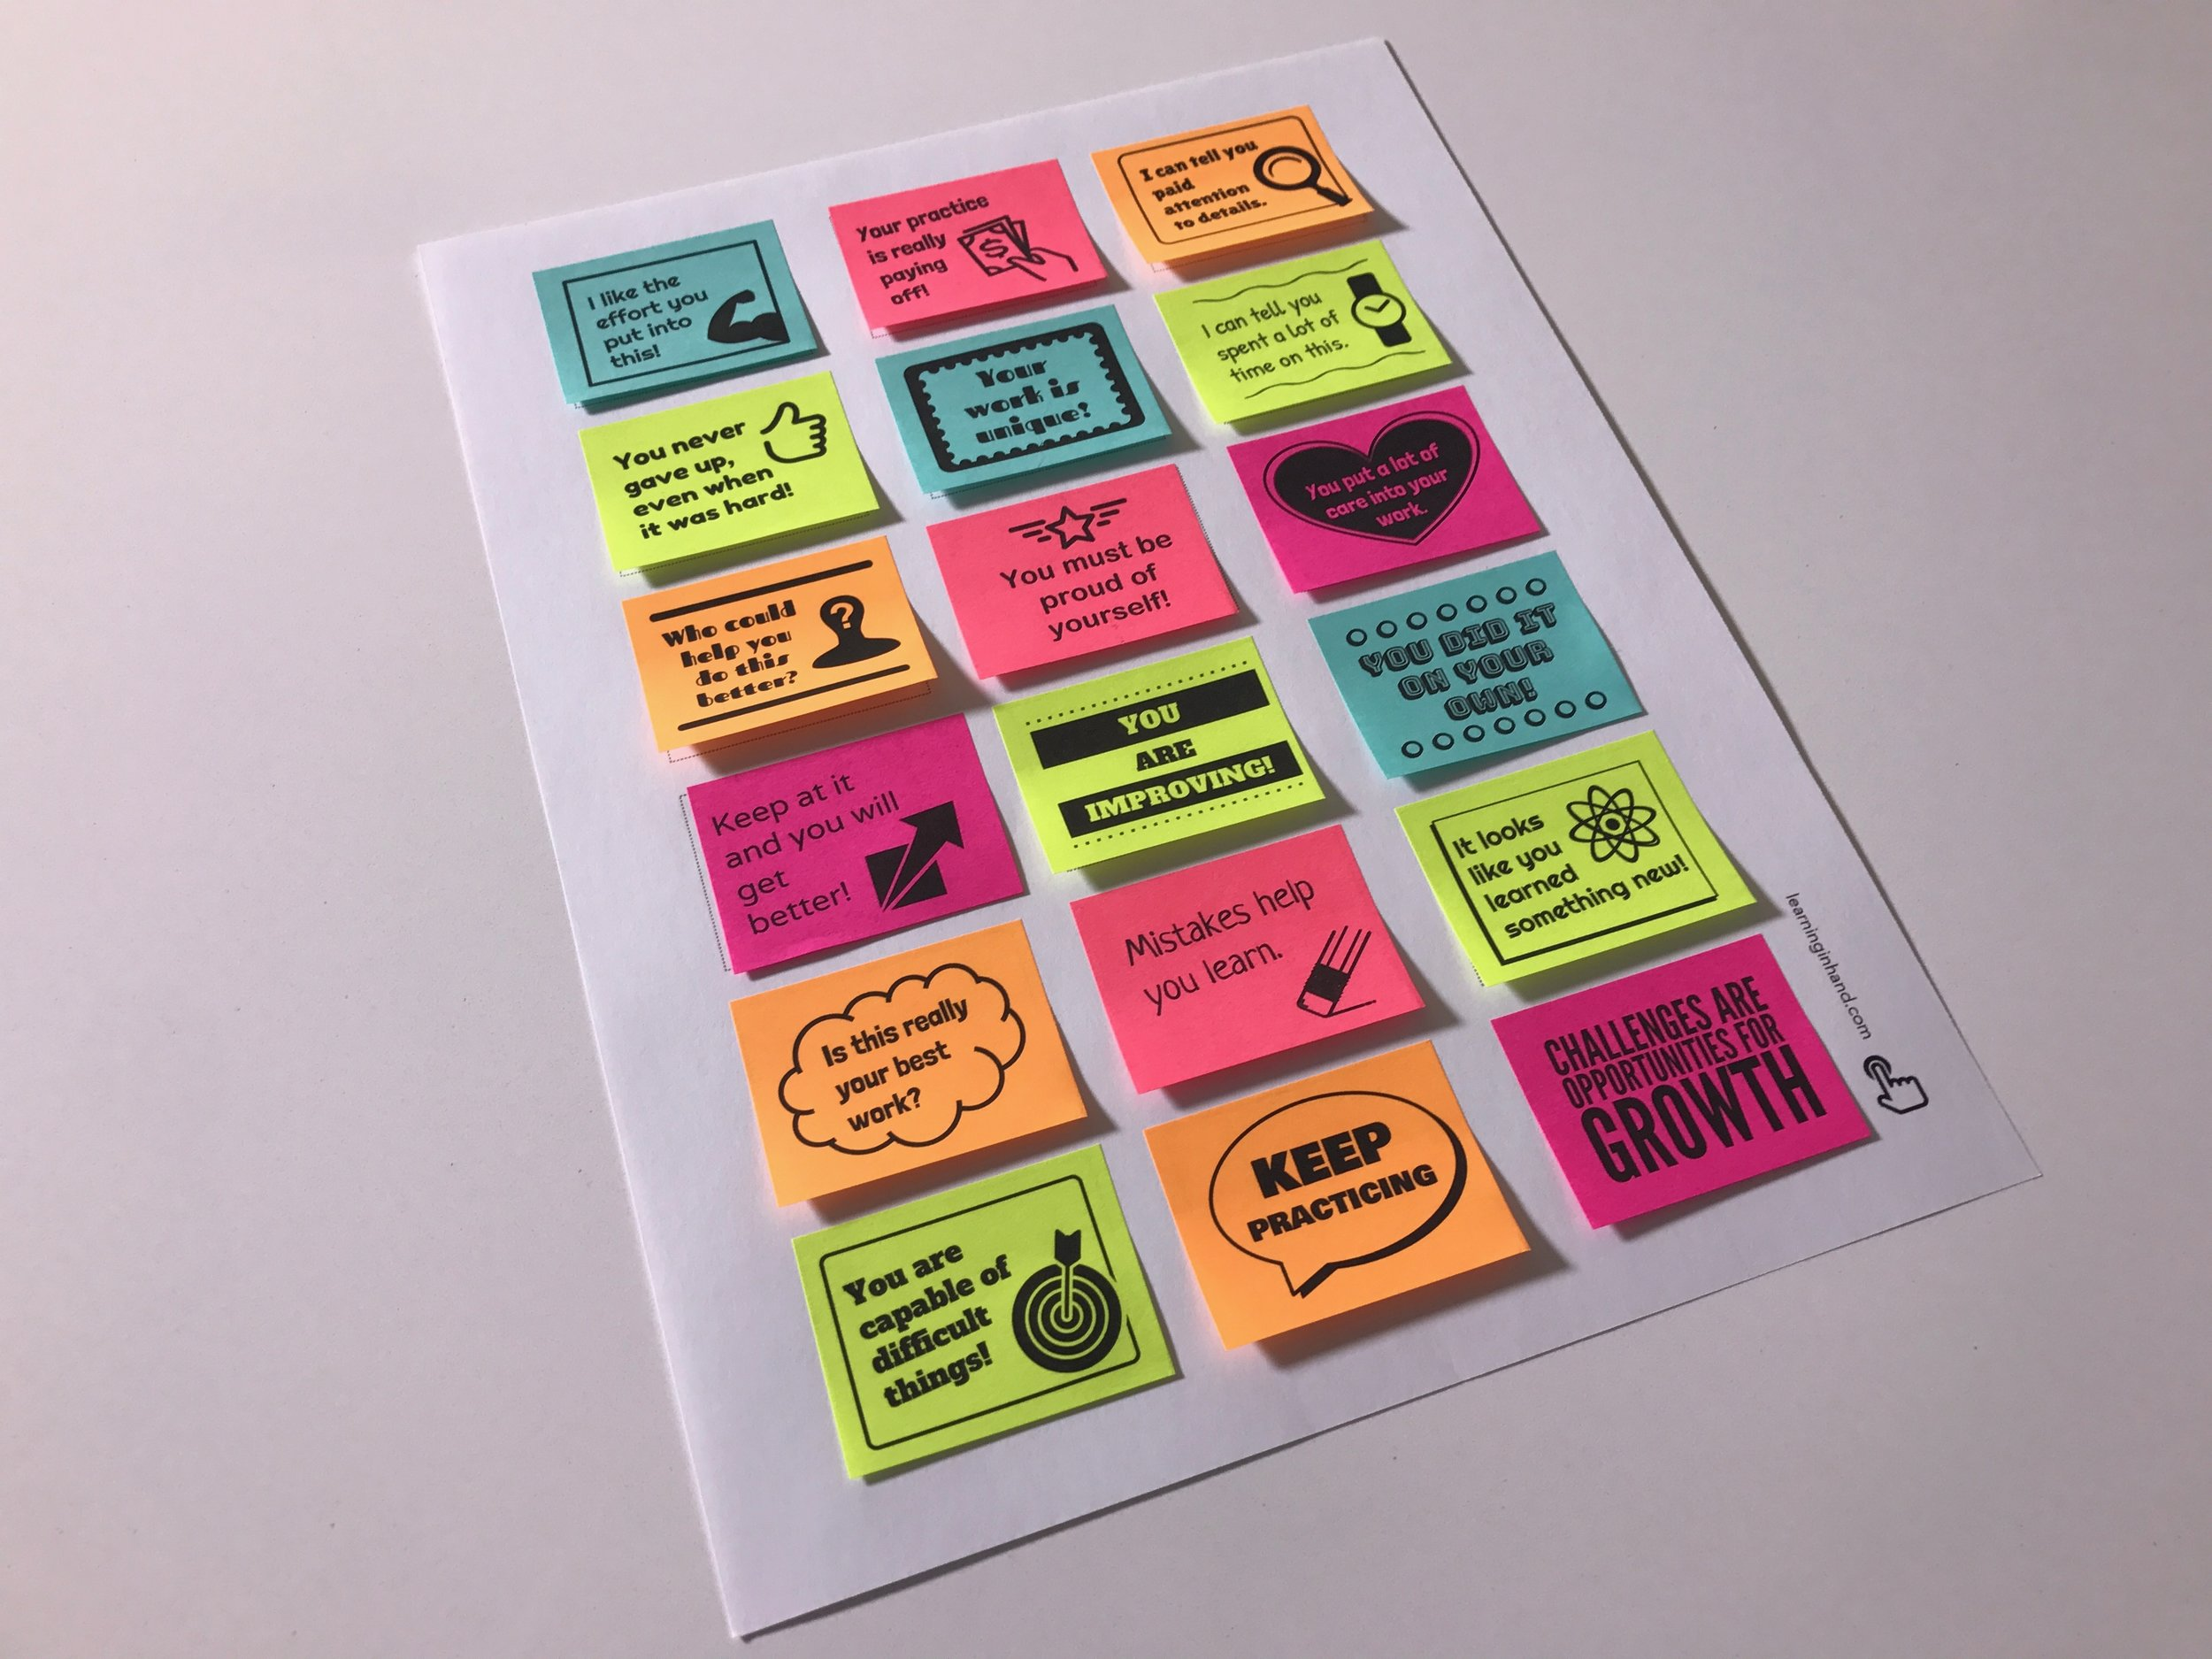 photograph relating to Editable Post It Note Template referred to as Print Tailor made Sticky Notes with Google Slides Studying within